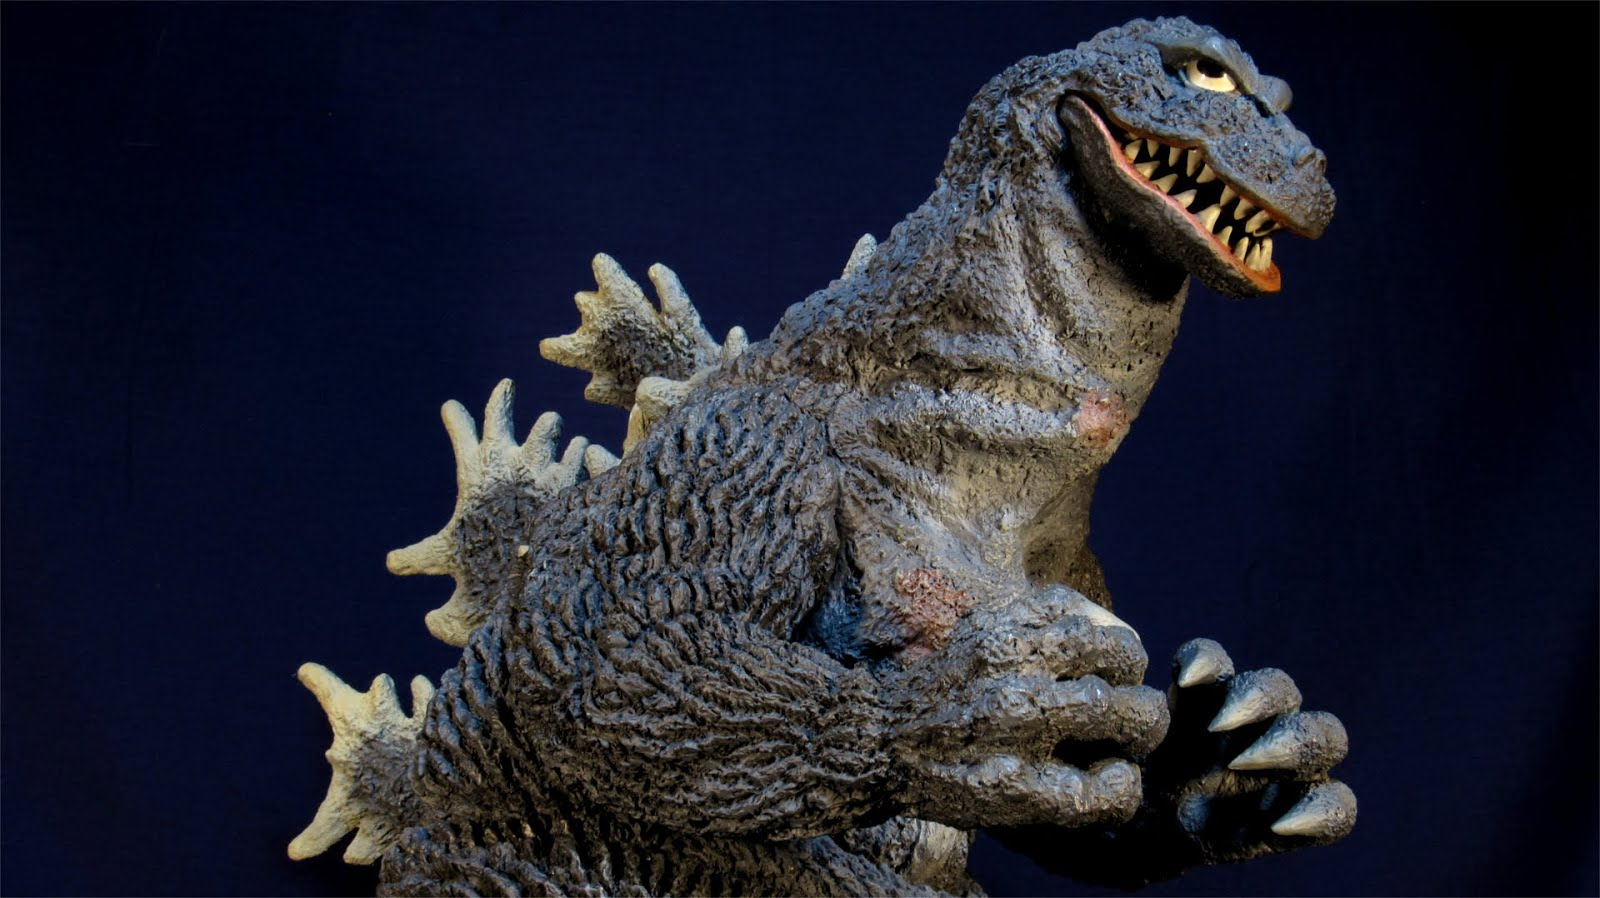 New Toy Tuesday: Godzilla, Star Trek, Star Wars, Daleks and Flying Gamera